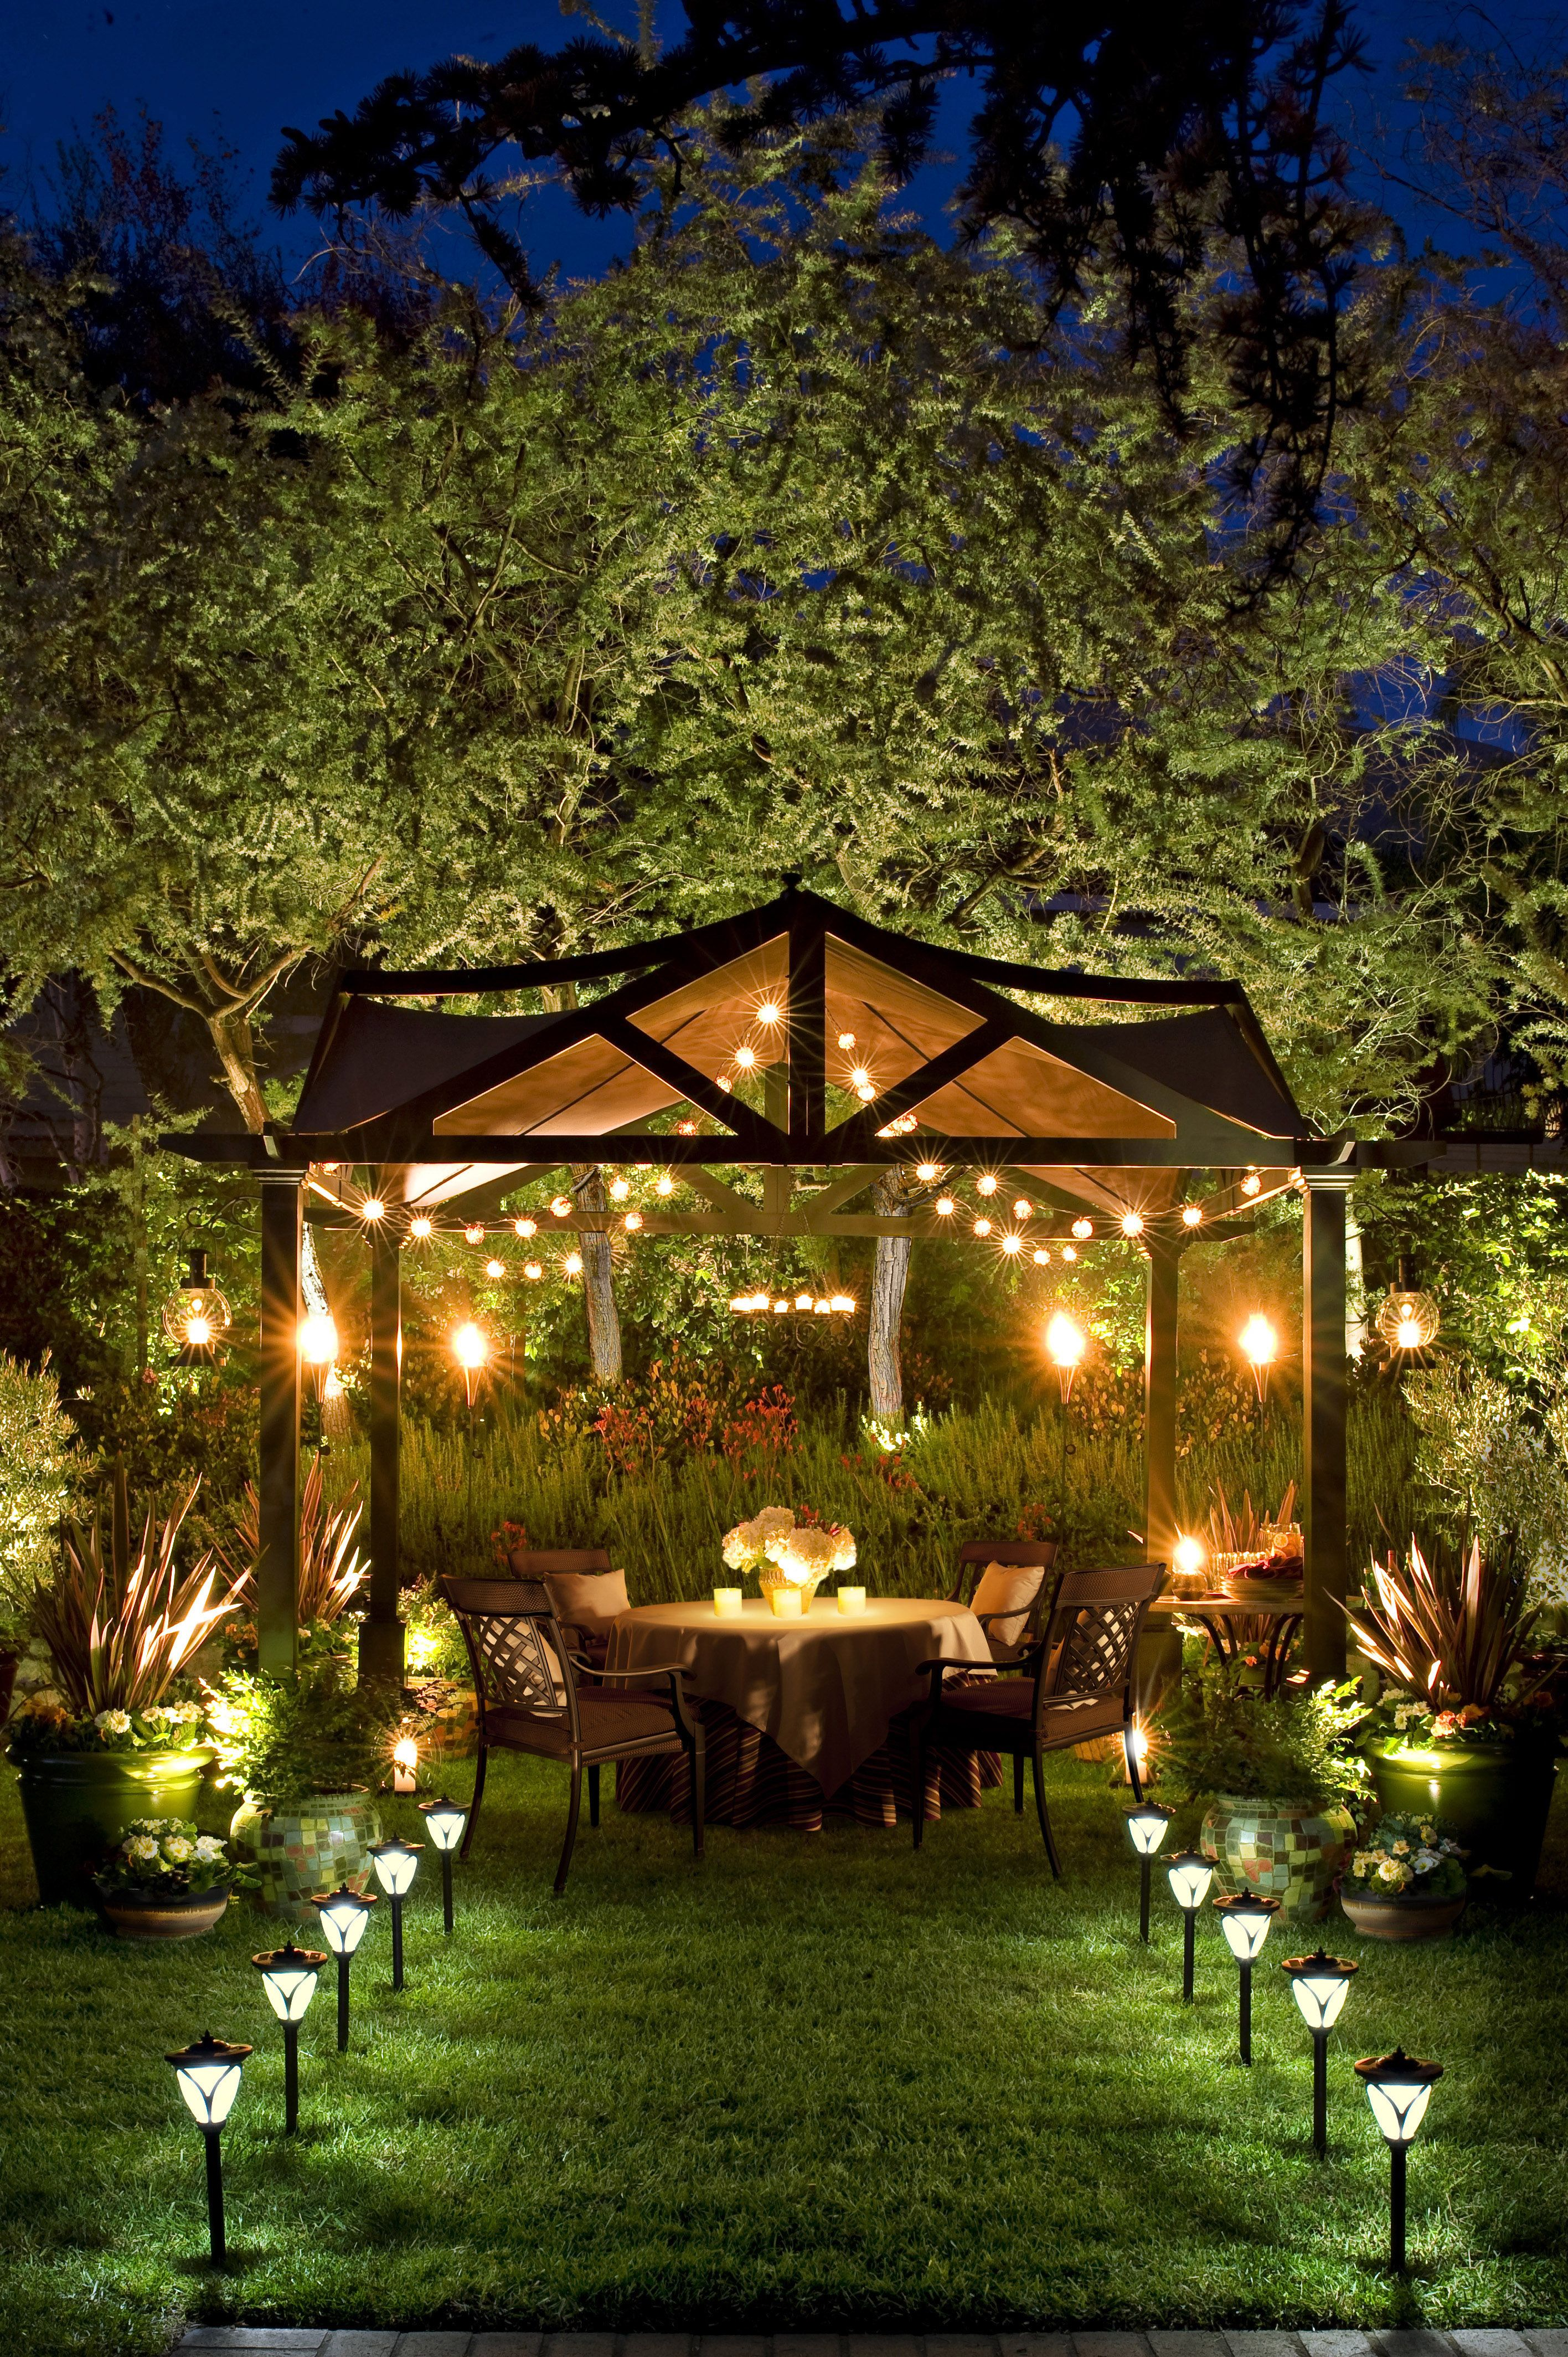 do it yourself outdoor lighting. Lights In Gazebo Enchanting. Needs Softer Lighting On Lawn Or No Lights. Hide With Your Hand And See For Yourself. Do It Yourself Outdoor L